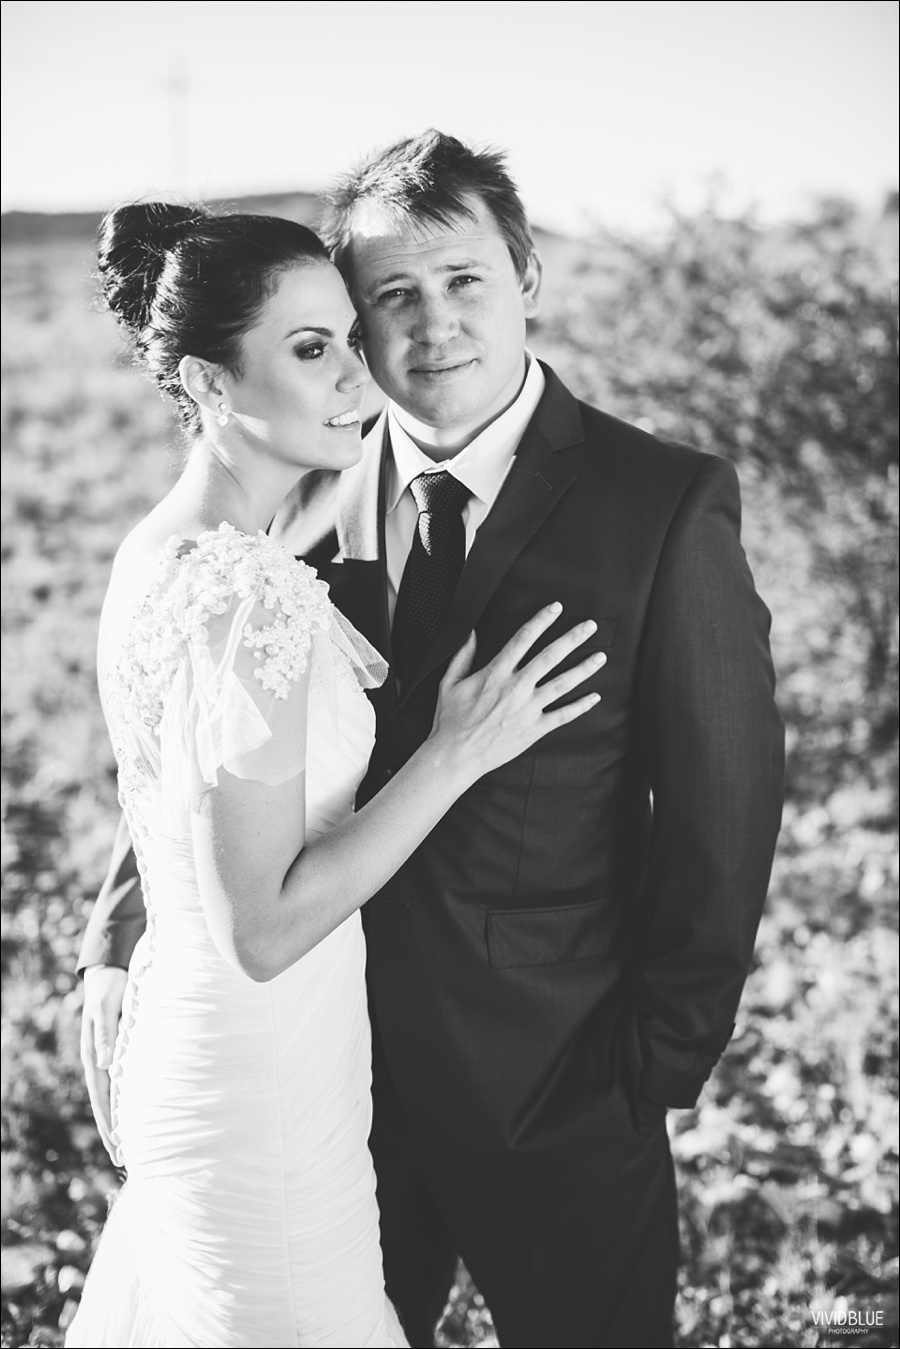 VividBlue-louis-christa-wedding-upington-053